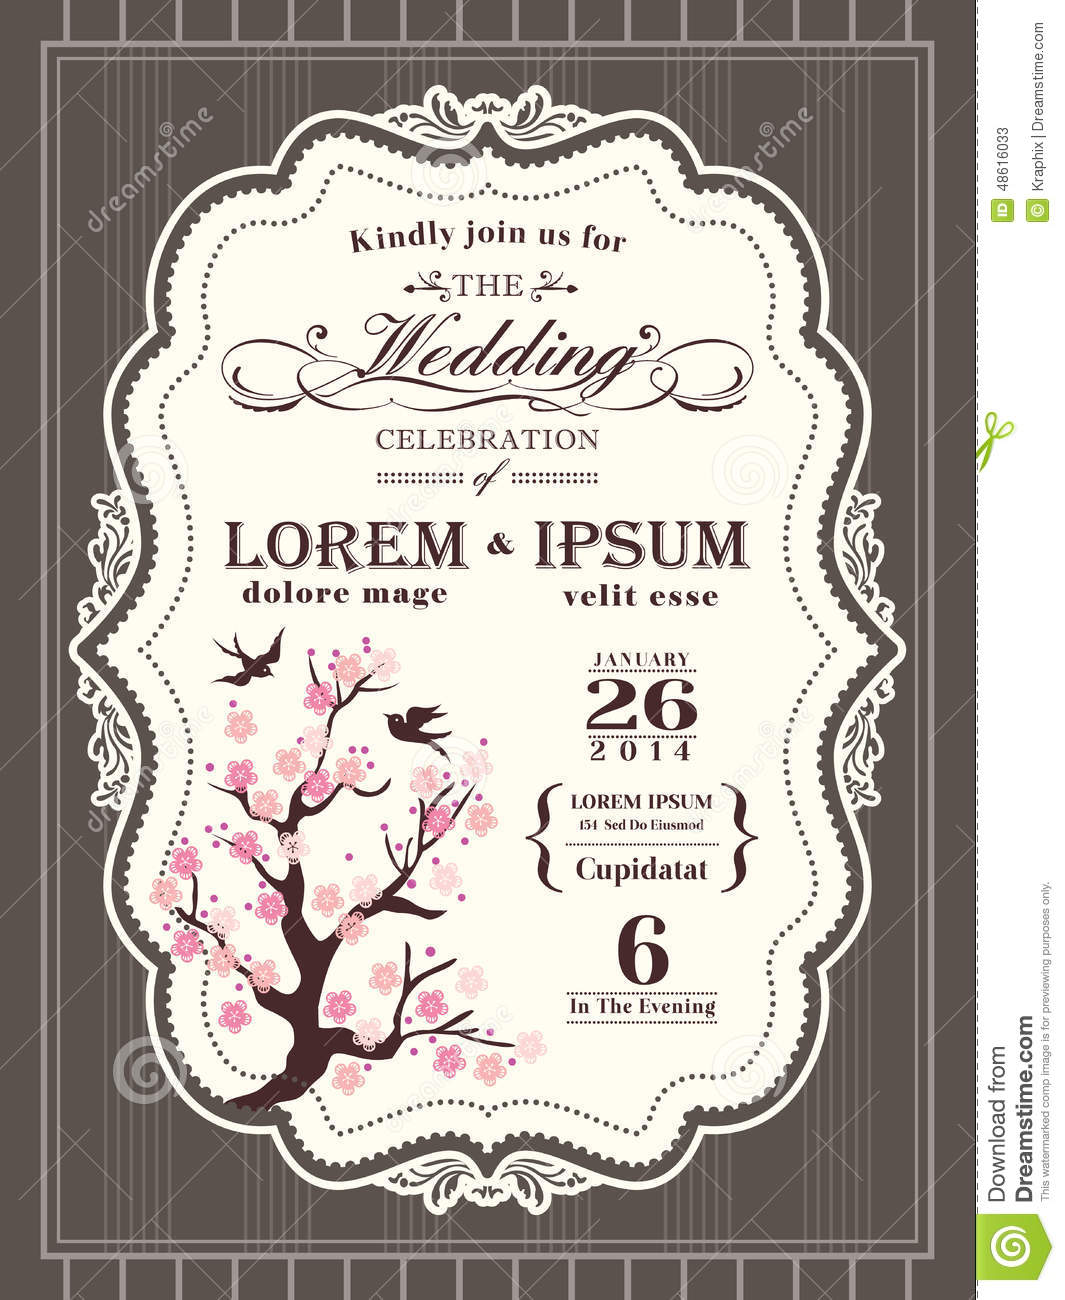 vintage cherry blossom wedding invitation border and frame stock vector image 48616033. Black Bedroom Furniture Sets. Home Design Ideas